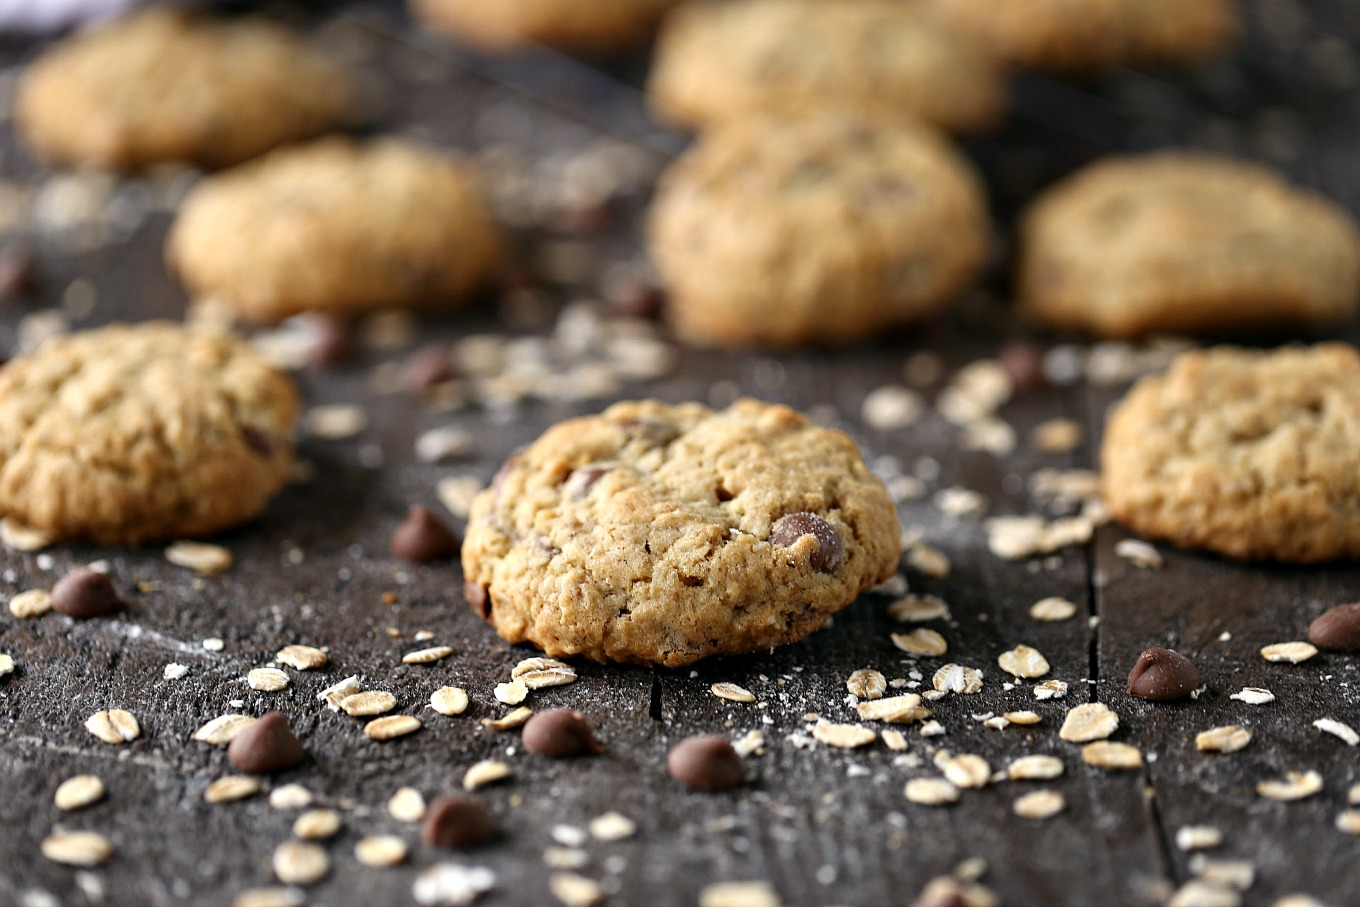 Oatmeal Chocolate Chip Cookies on a dark counter with ingredients scattered around.